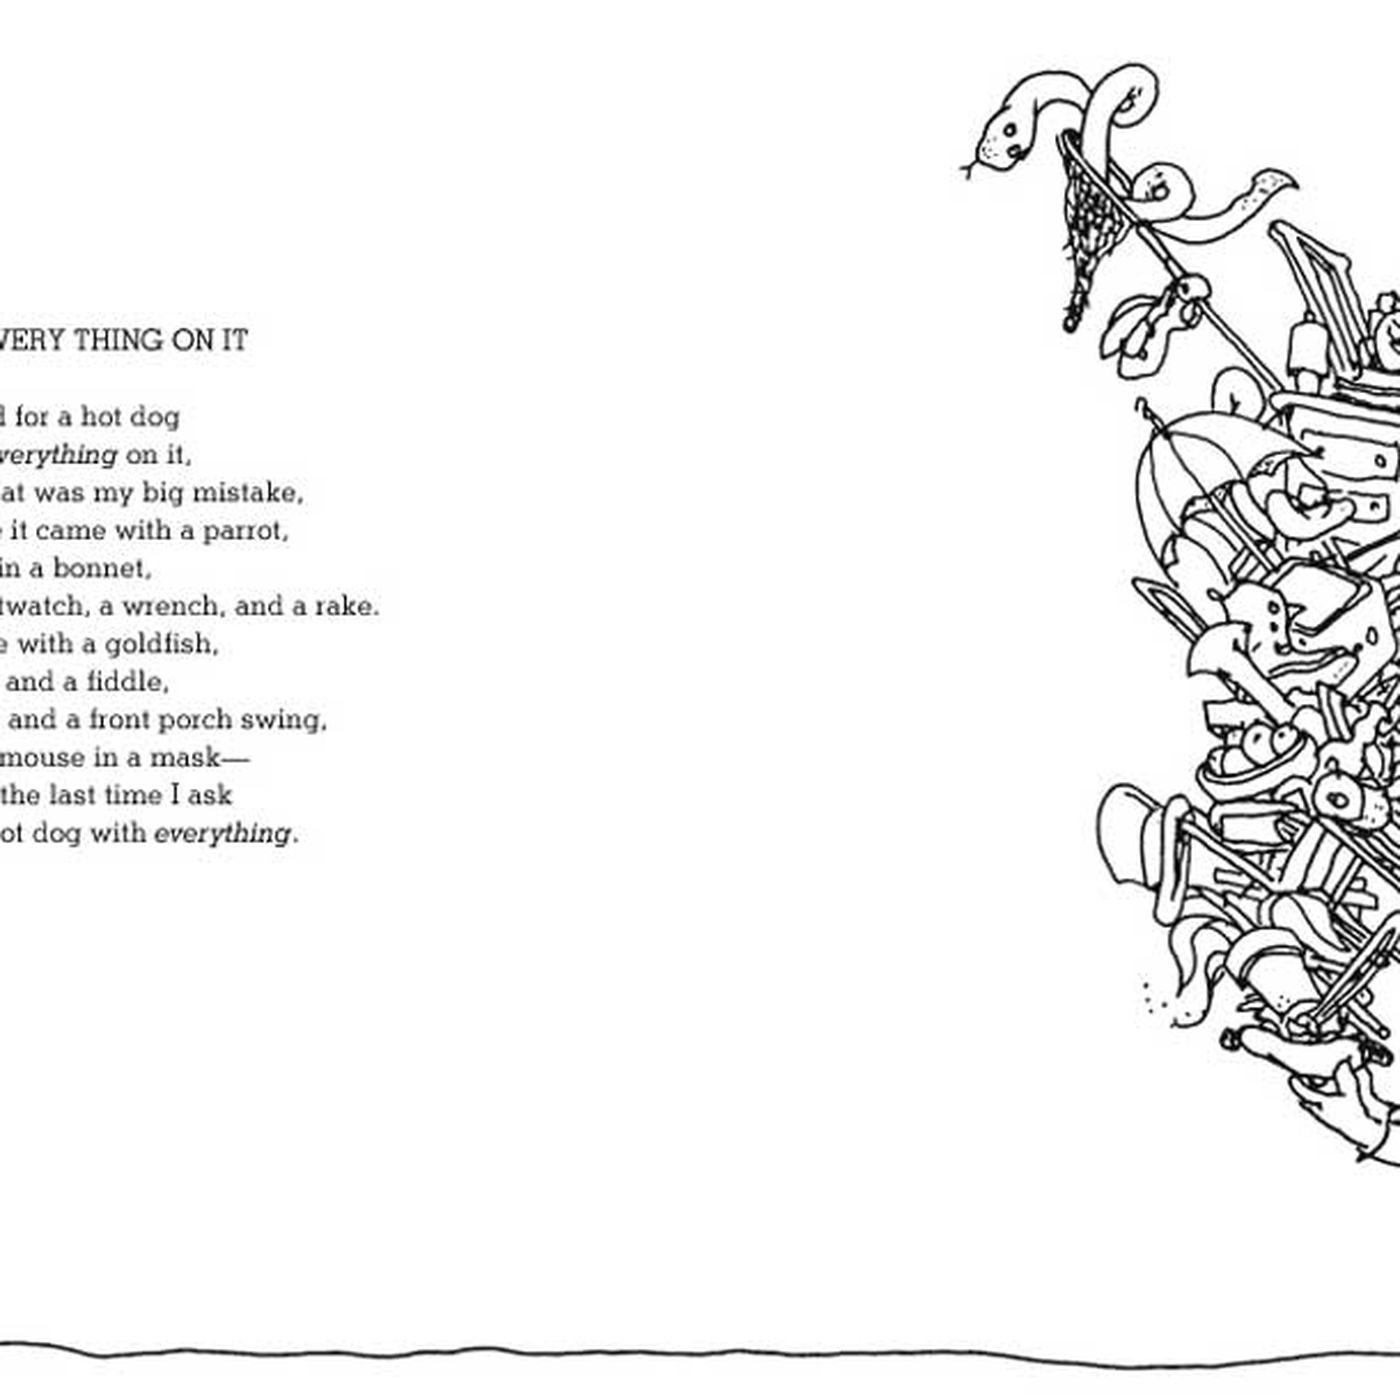 Shel Silverstein Rhymes About Hot Dogs, Italian Food - Eater